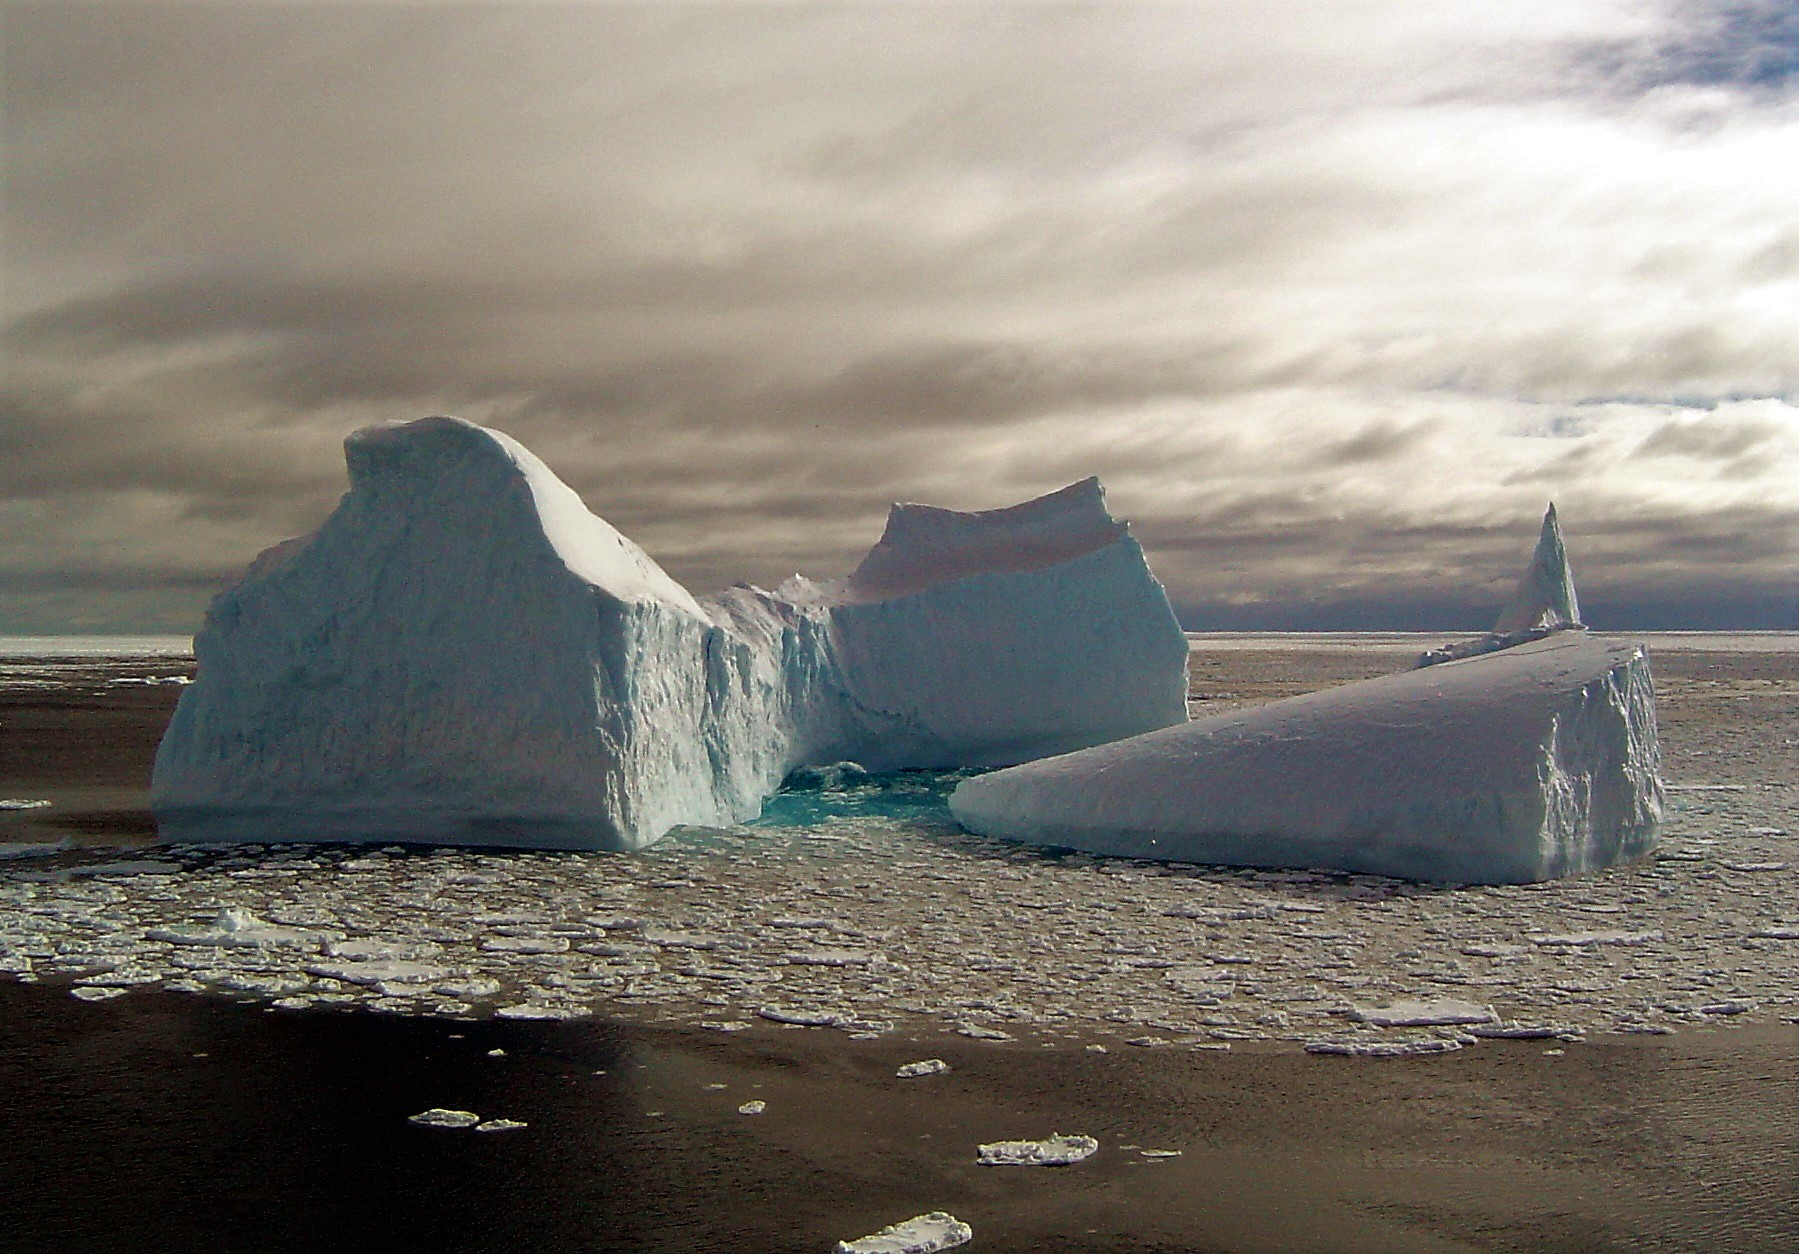 Icebergs can develop into a variety of shapes as they break apart. Credit: Ted Scambos, NSIDC